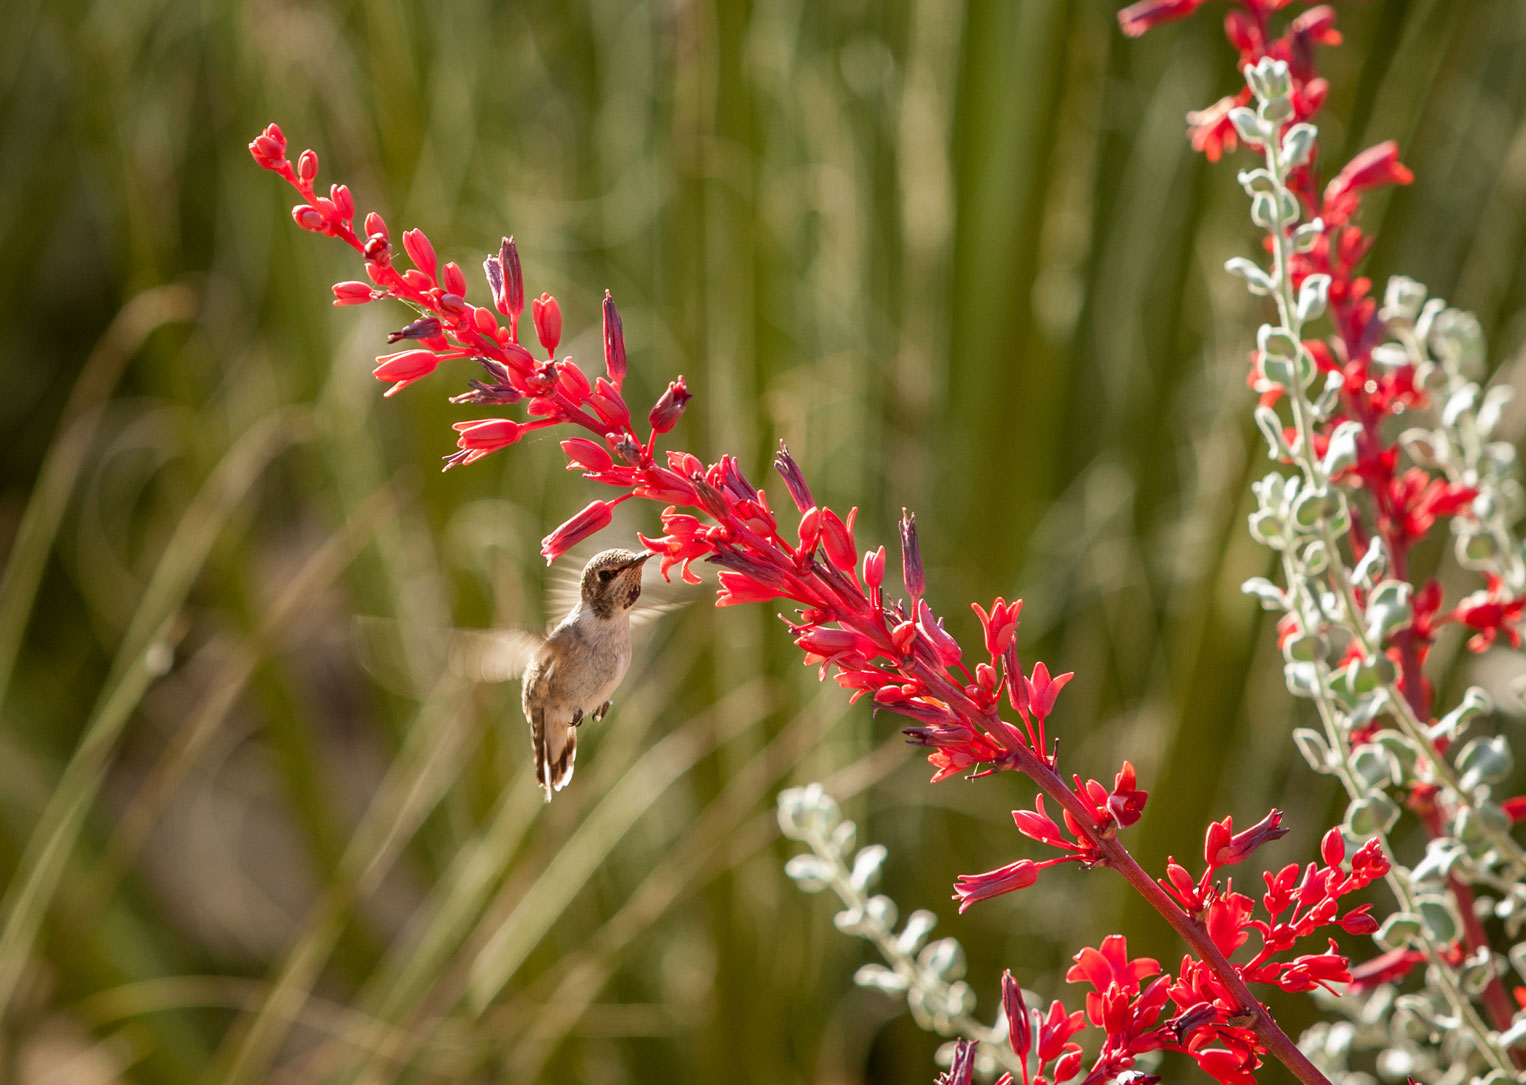 A close-up of the deep red flowers of the Brakelights Hesperaloe.